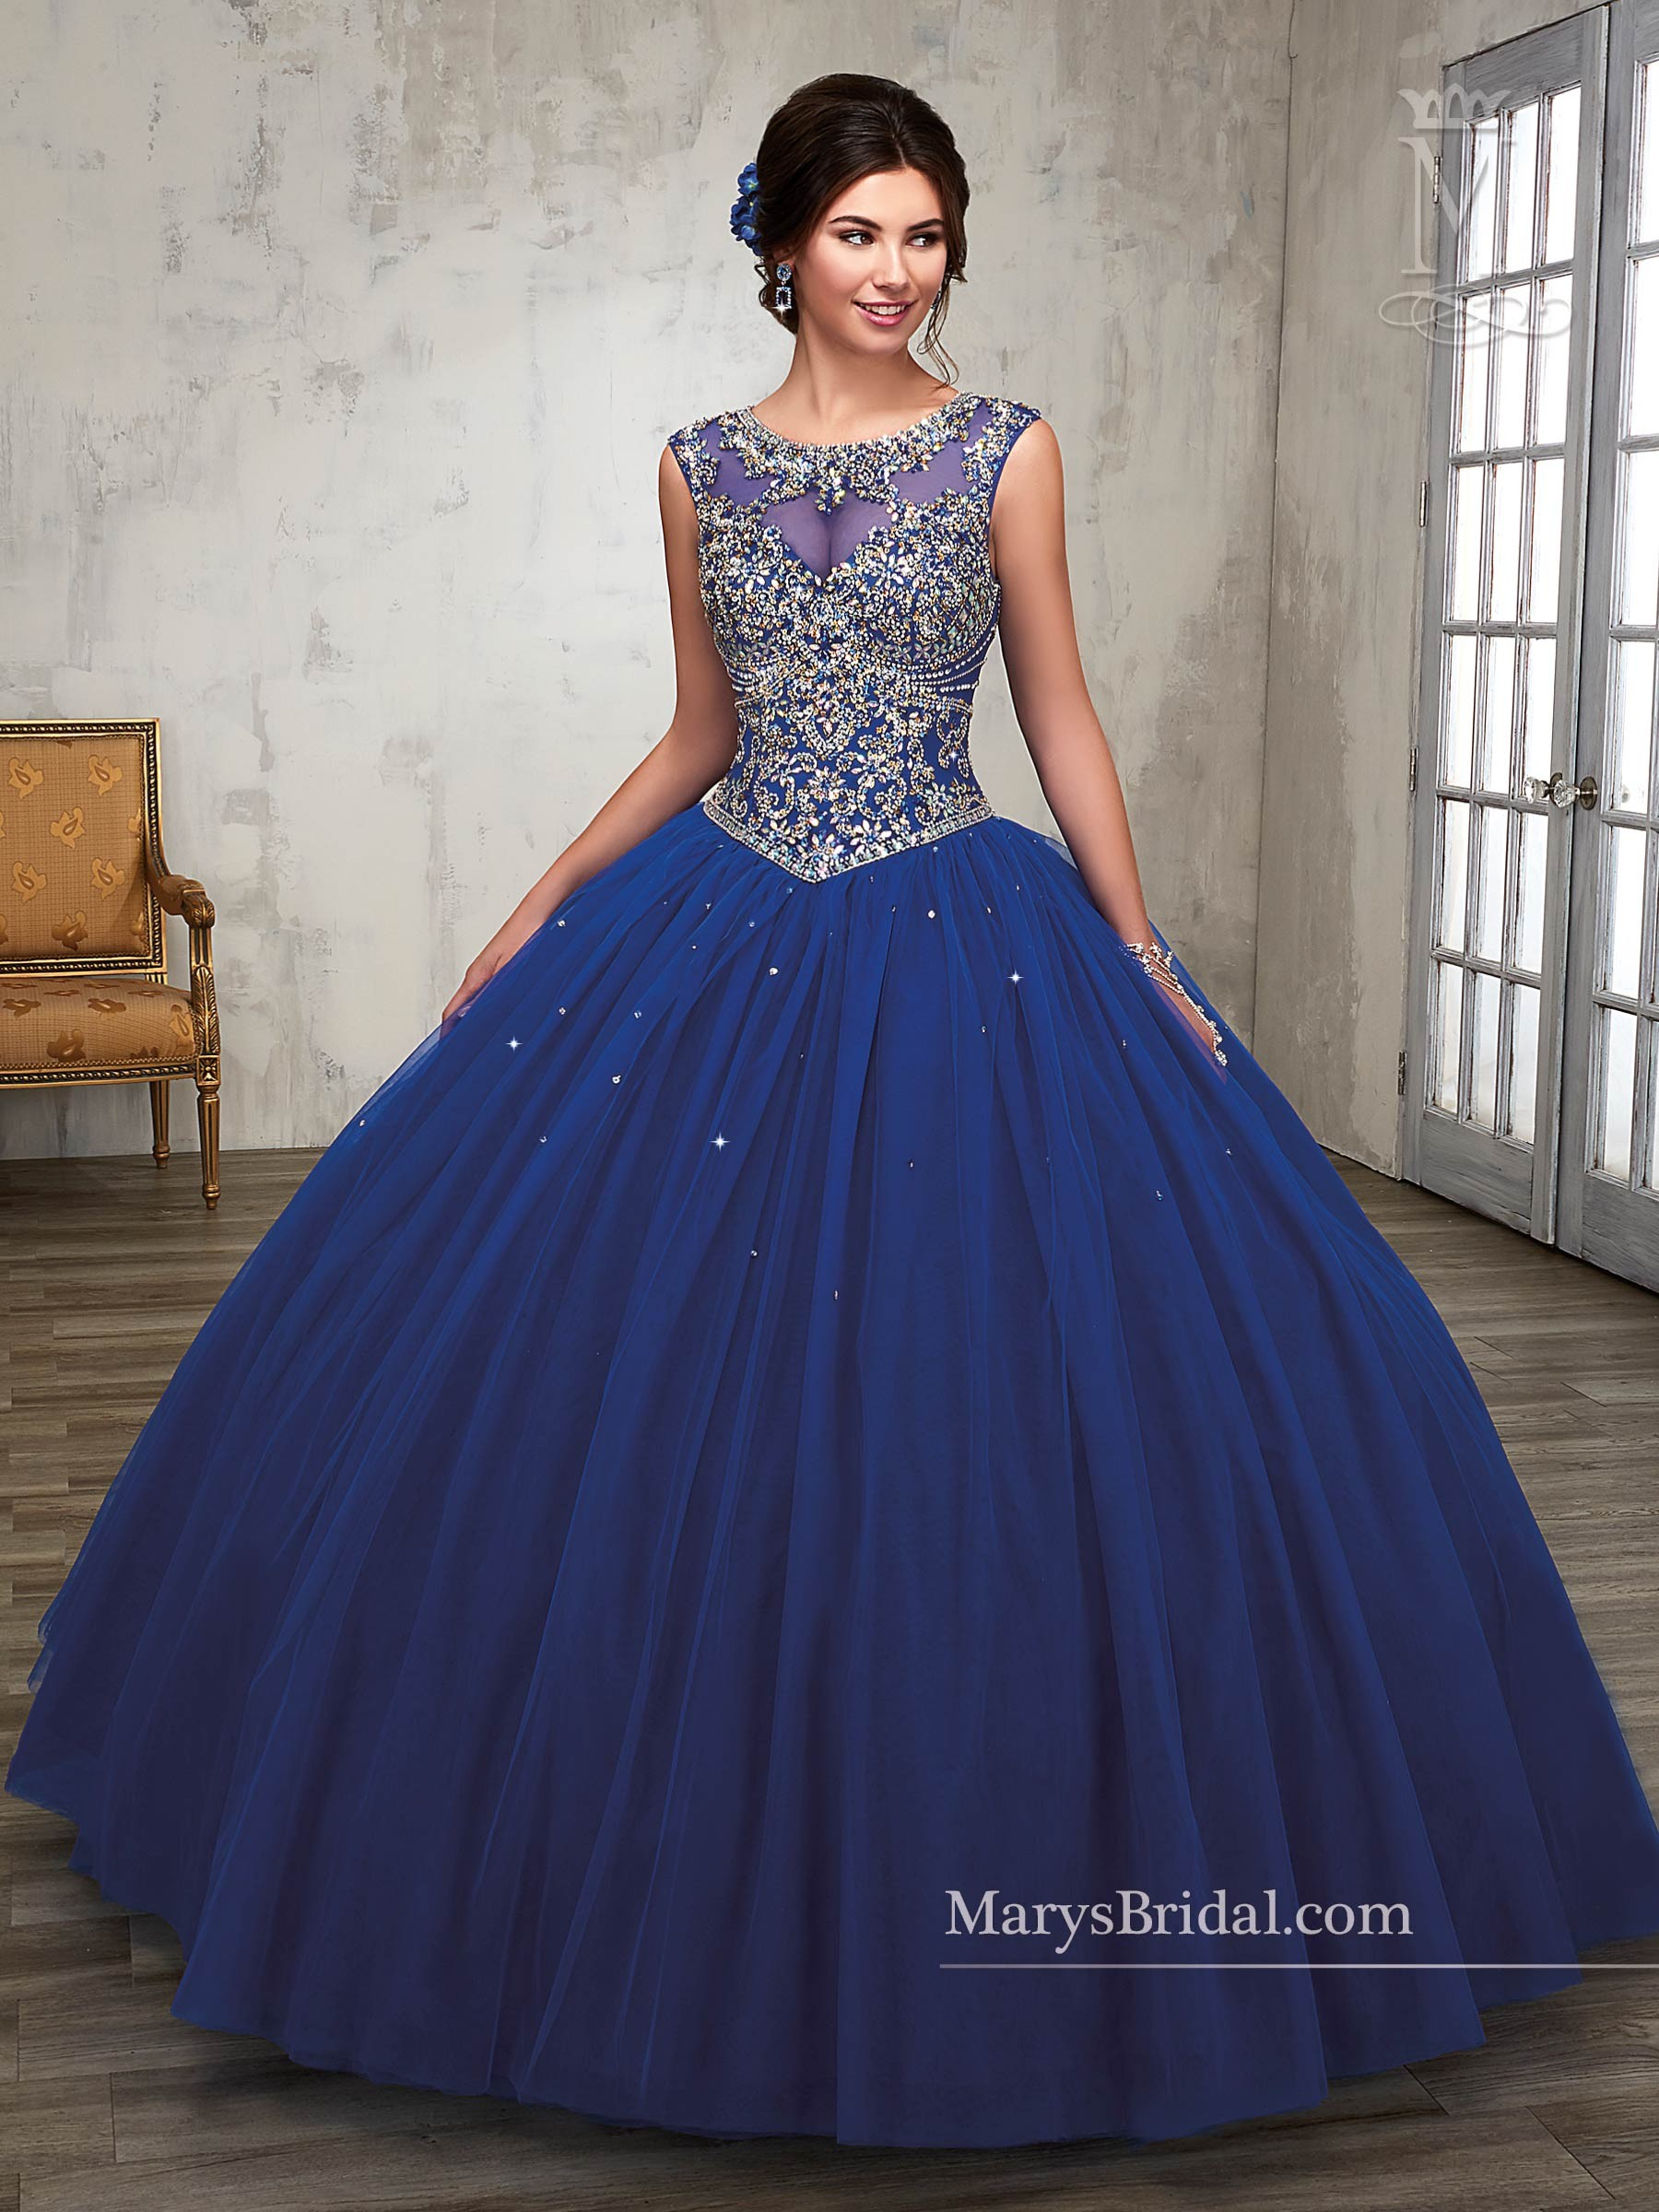 76924a83309 Marys Bridal 4804 Quinceanera Dress. Tap to expand